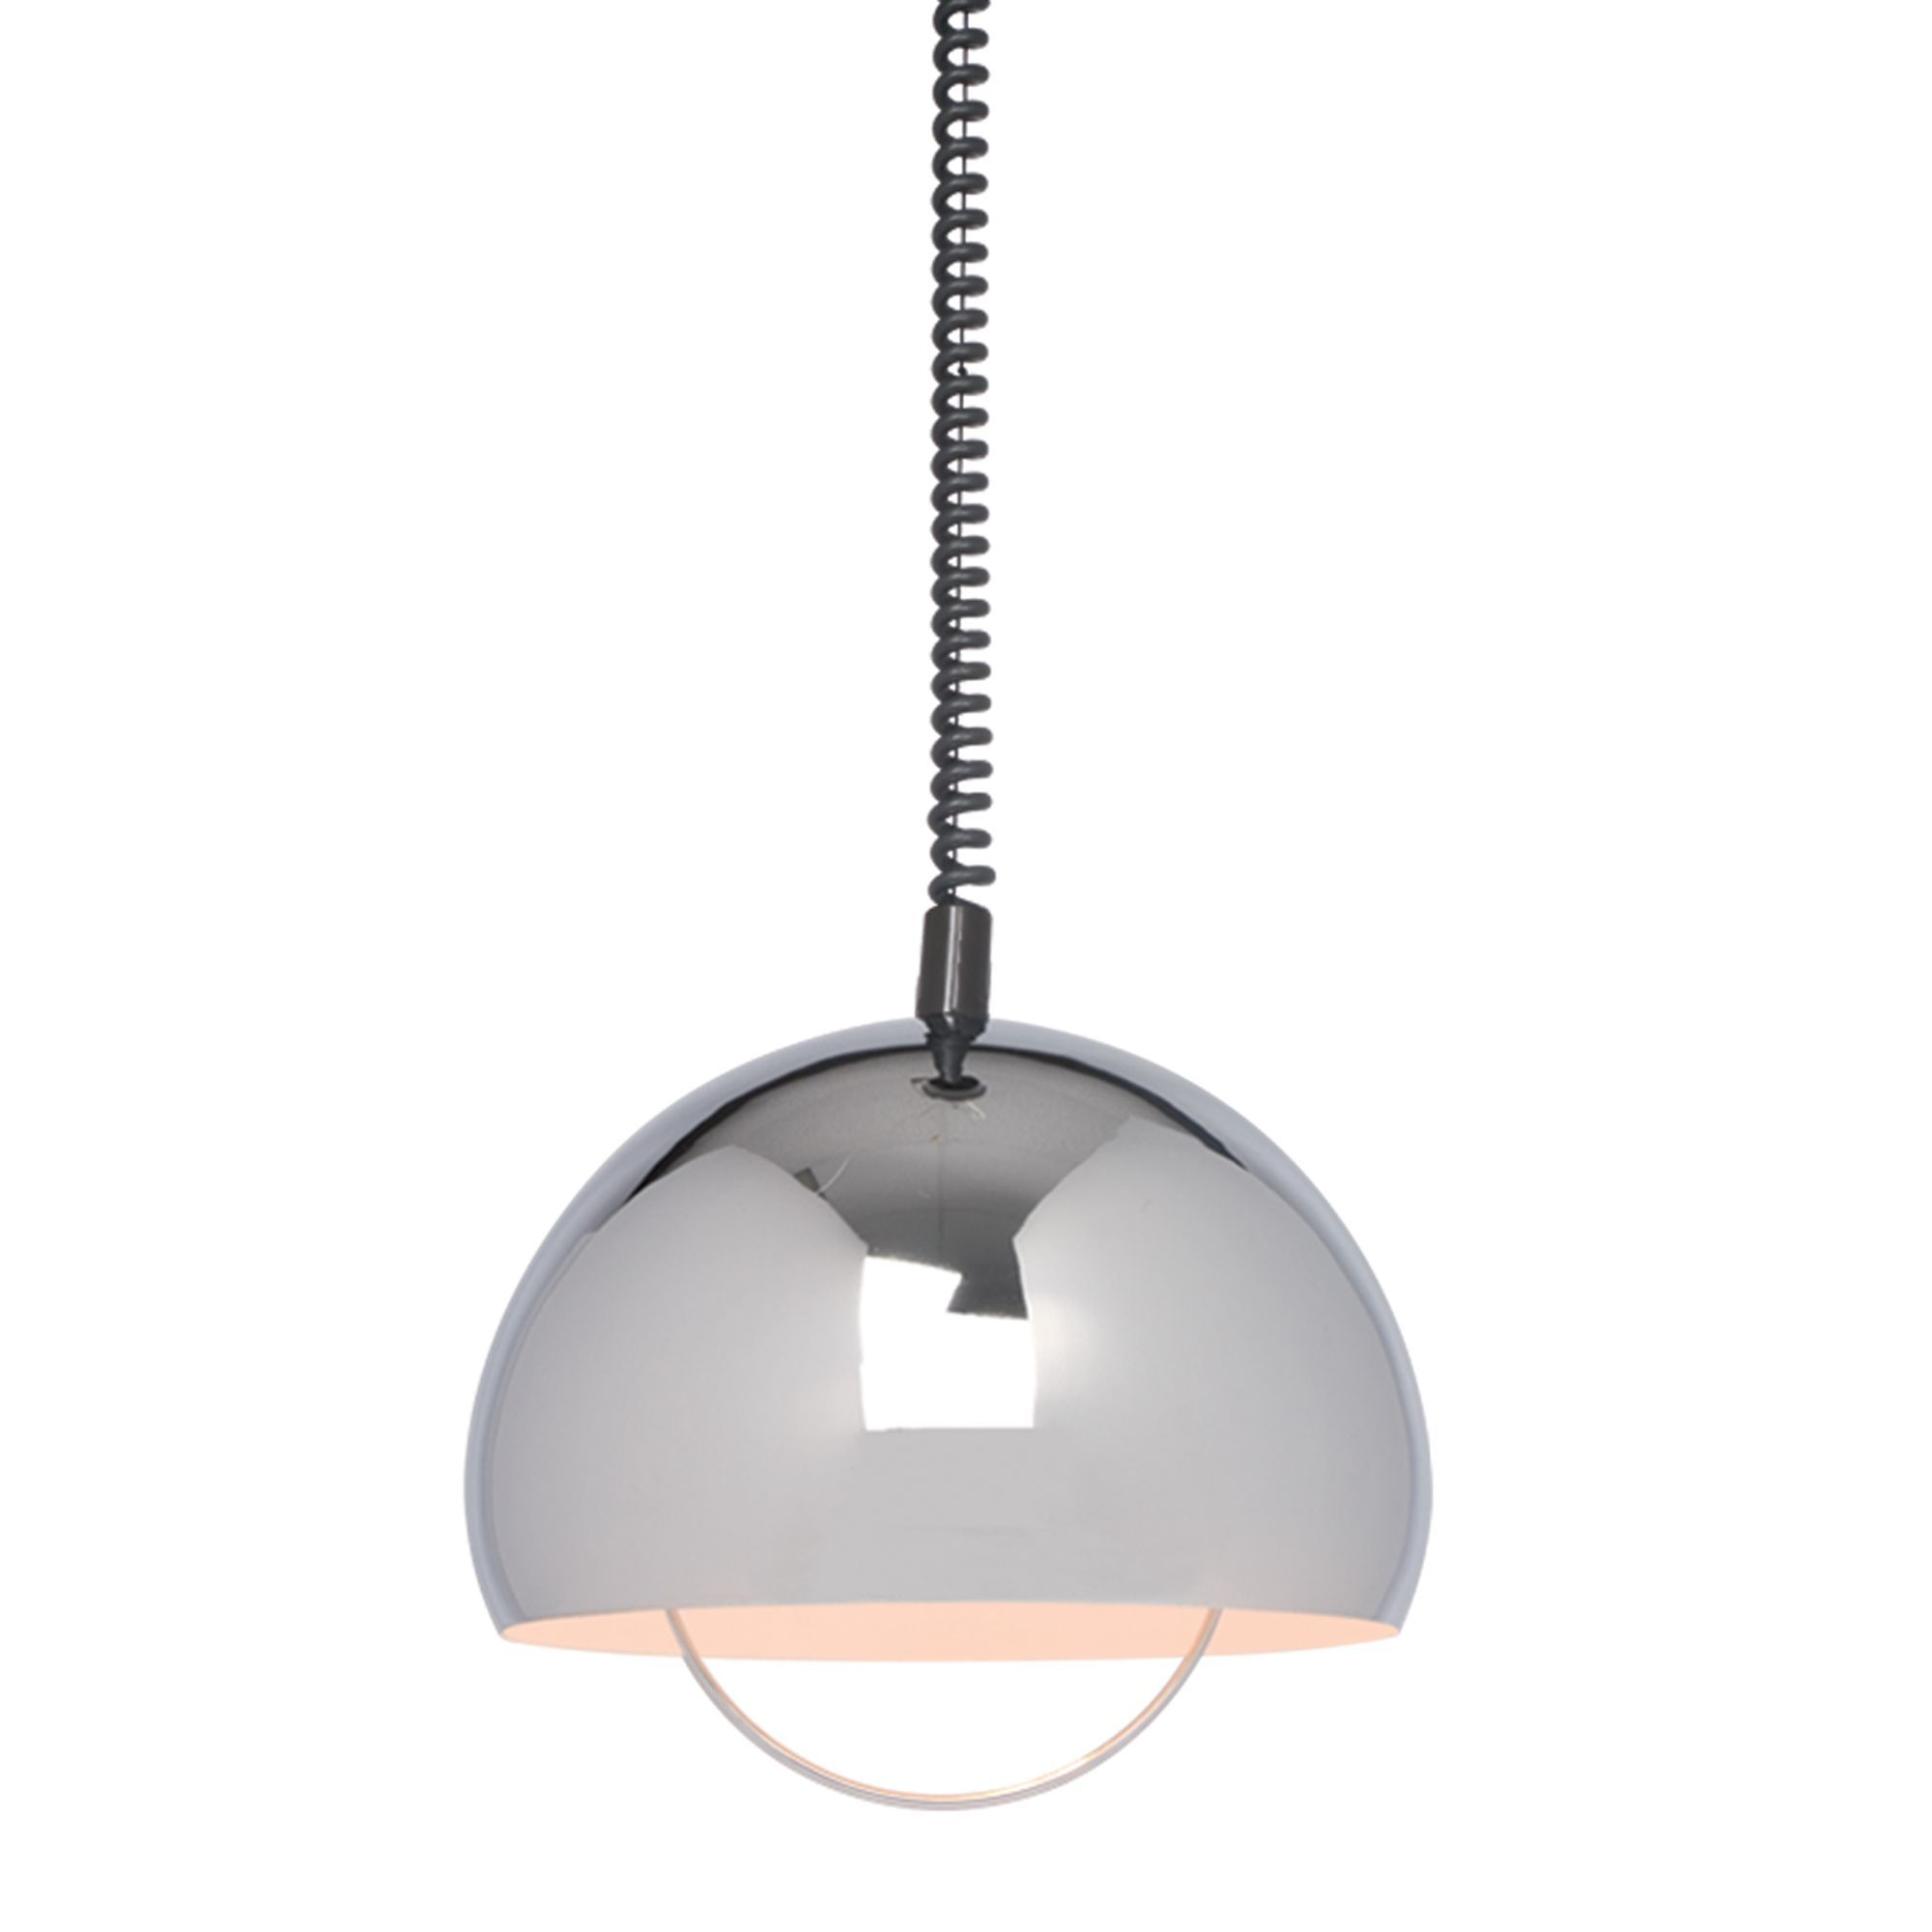 pendant white buy ceiling habitat care rock now metal instructions uk light at